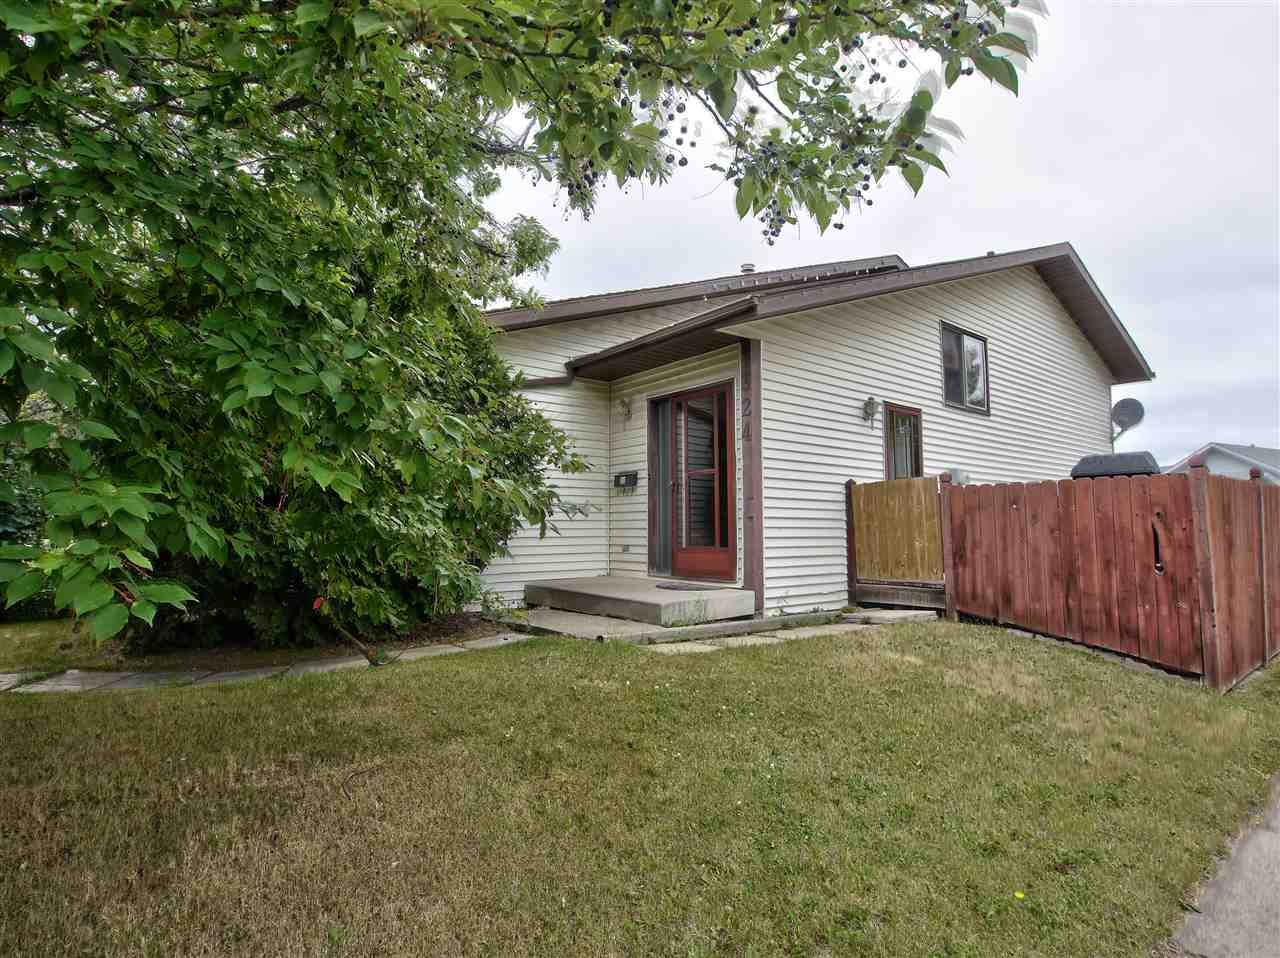 Main Photo: 324 LAGO LINDO Crescent in Edmonton: Zone 28 House for sale : MLS® # E4074315